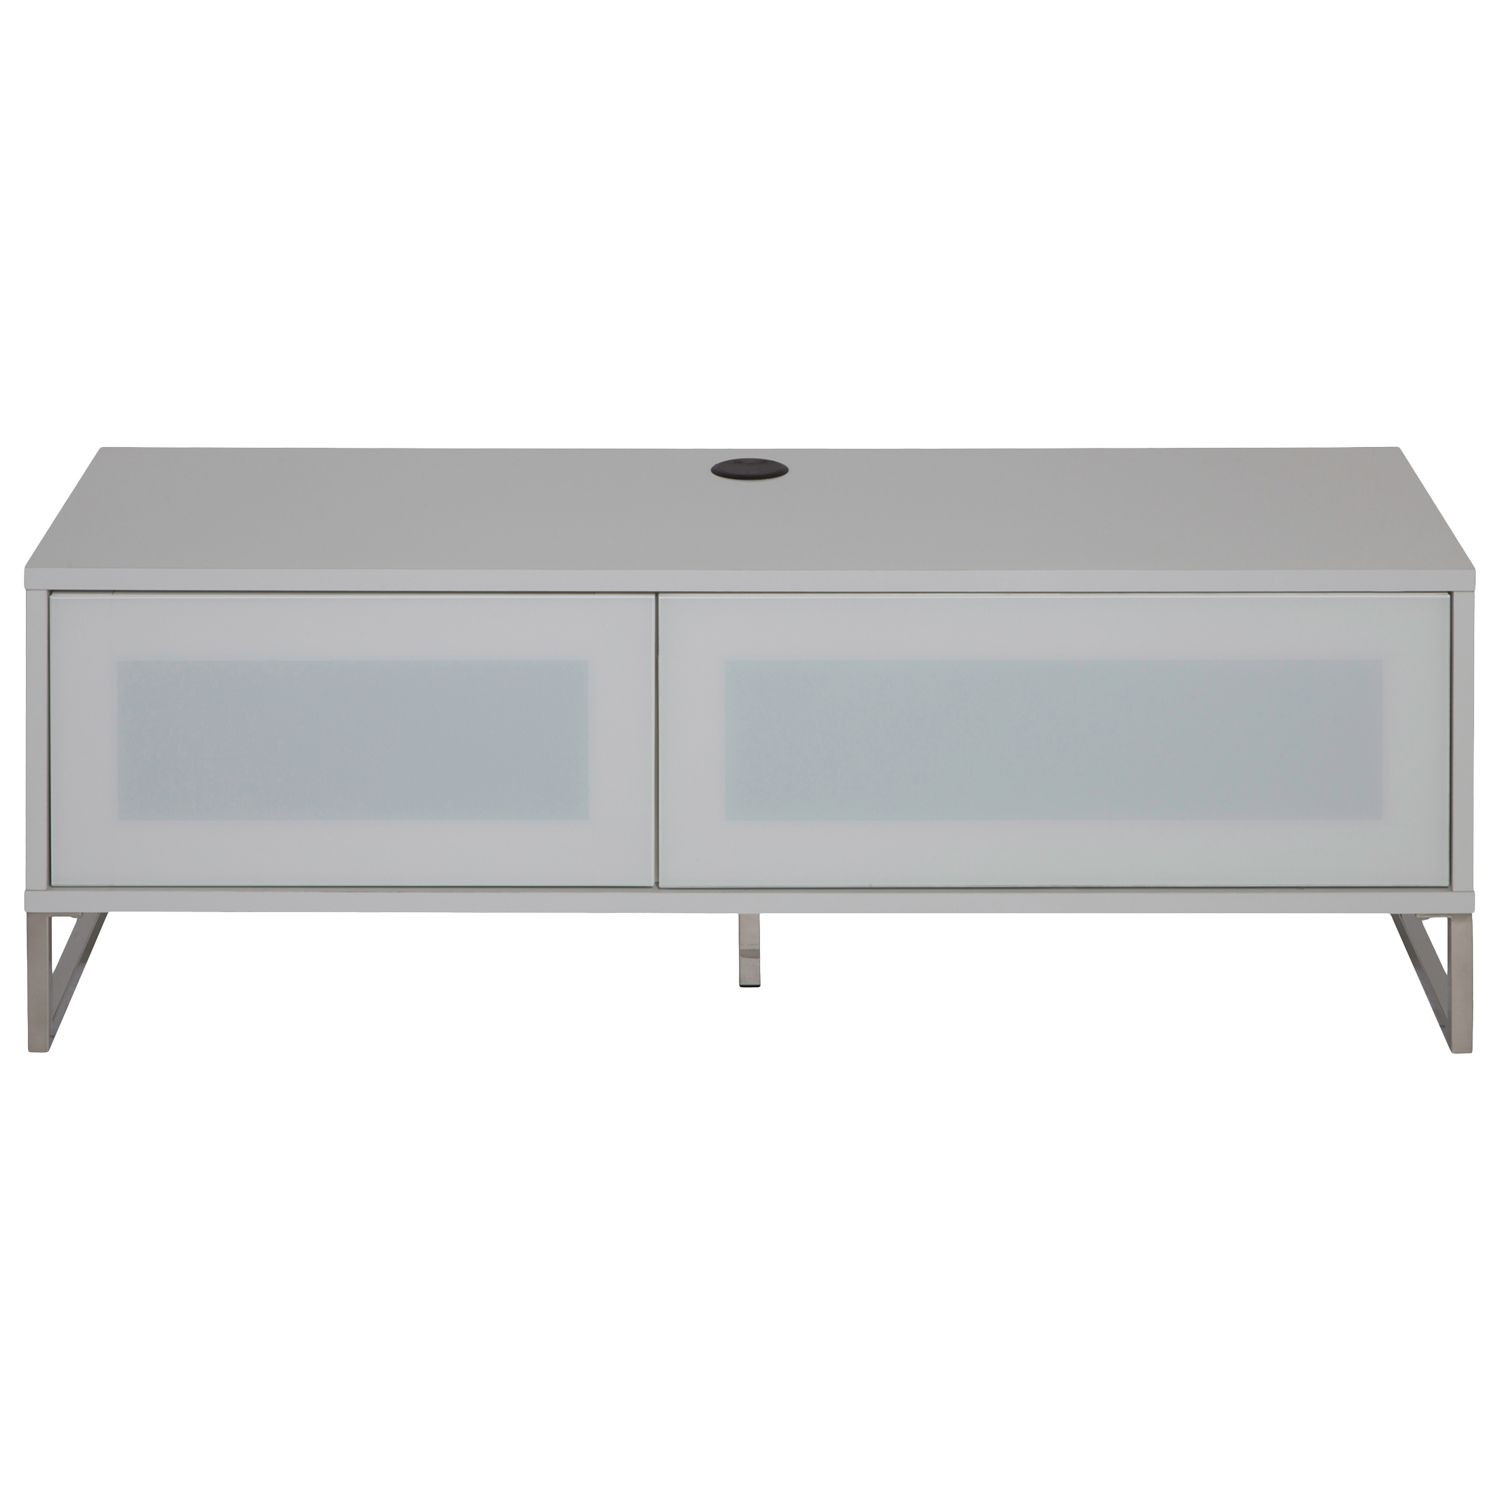 Alphason Alphason Helium TV Stand For TVs Up To 55